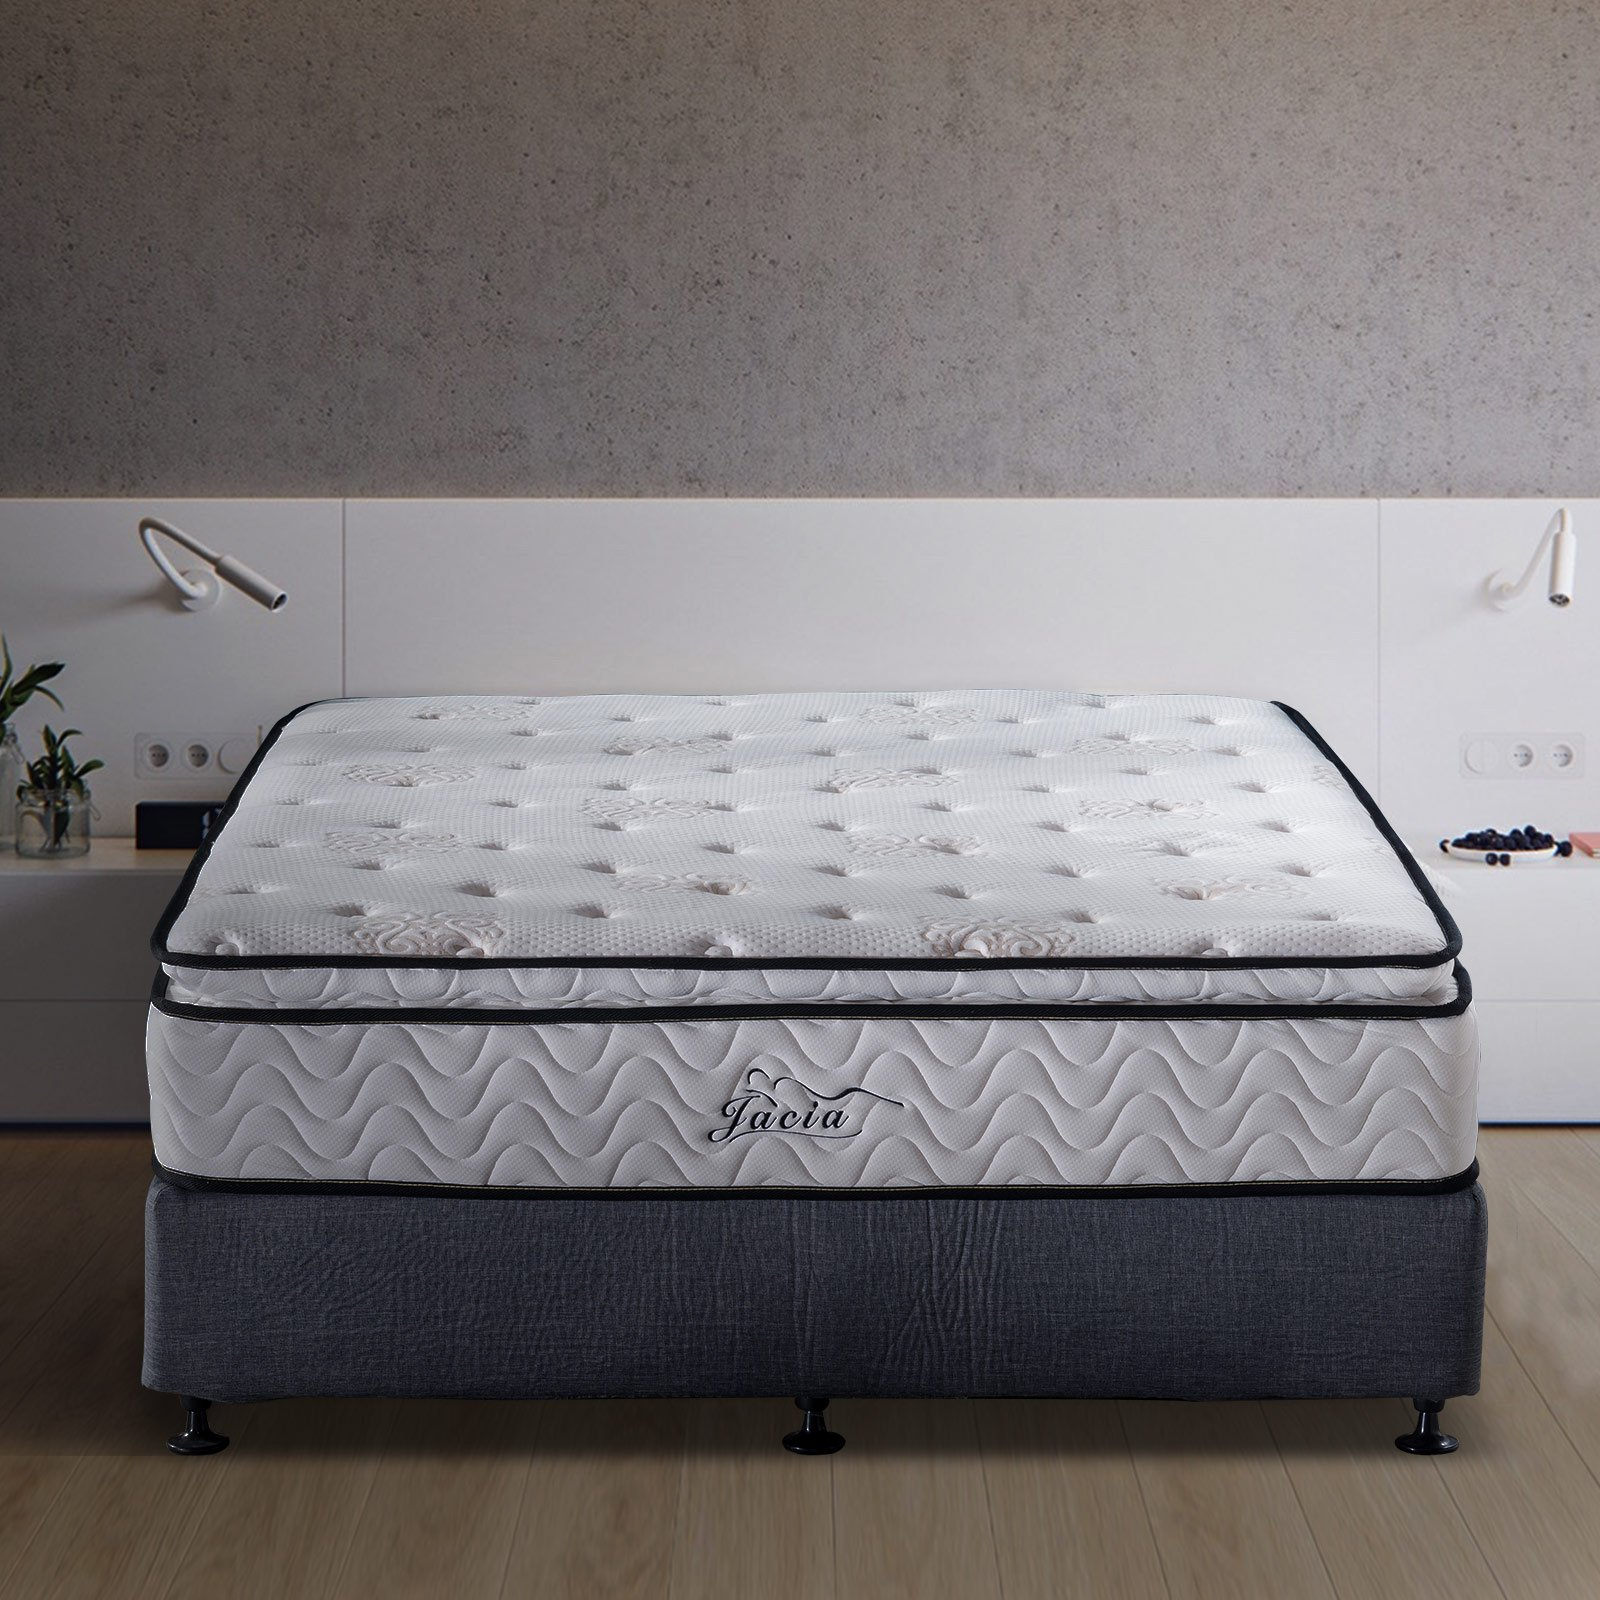 Jacia House 11.4 Inches Pillow Top Pocket Spring Hybrid Mattress, Memory Foam Innerspring Firm Mattress -Bed in a Box-King Mattress by Jacia House